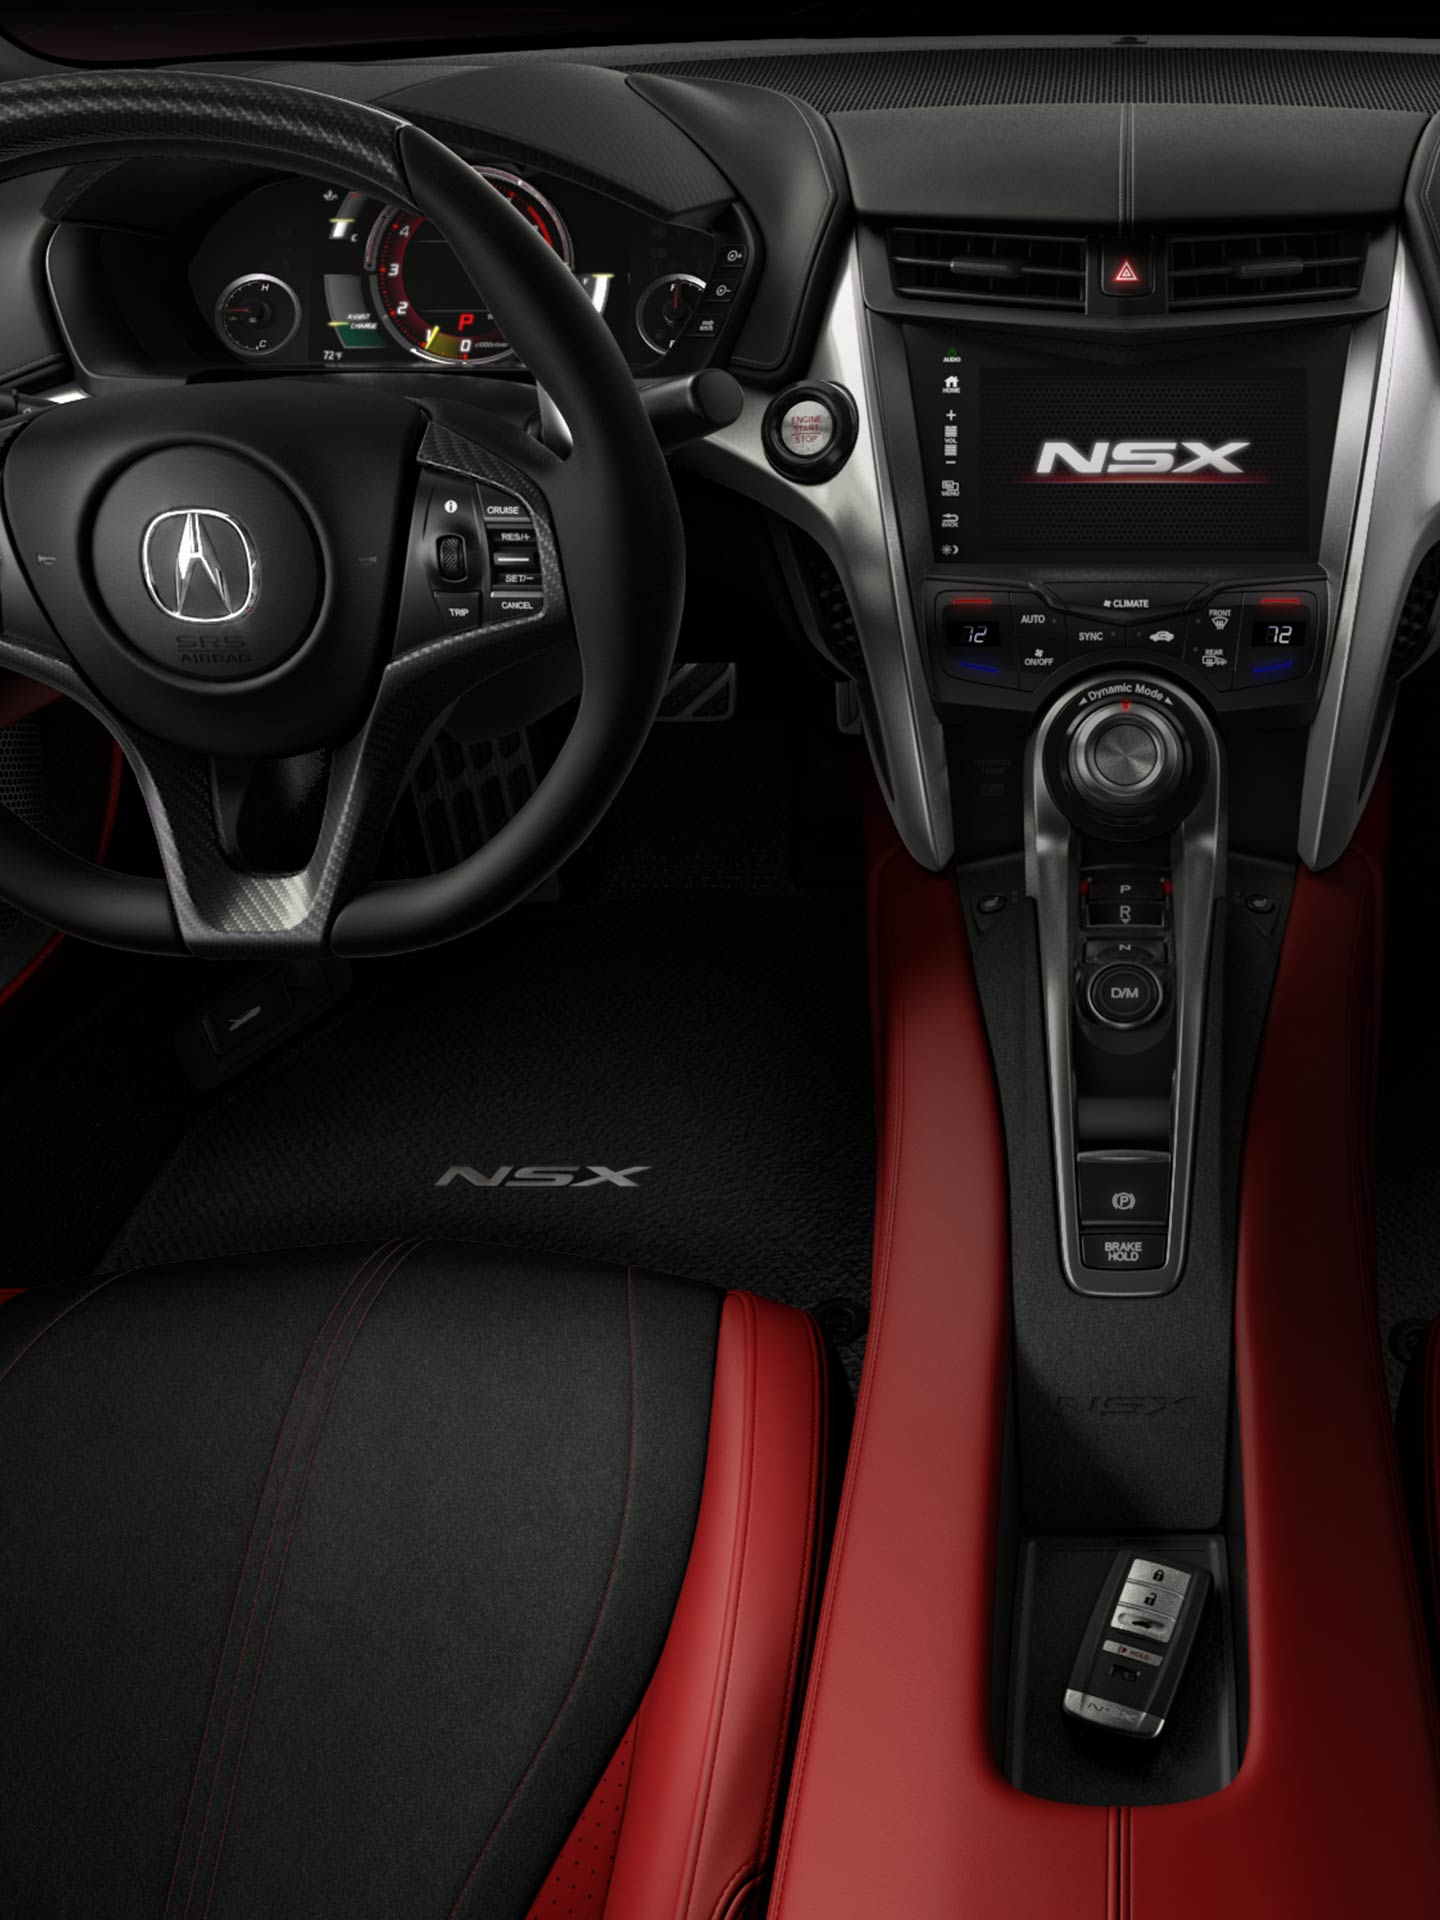 Next Gen Nsx Supercar New Details Acuracom Toyota Wiring Diagrams Homelink Center View Of Entire Dash In With Red Interior Carbon Fiber Steering Wheel